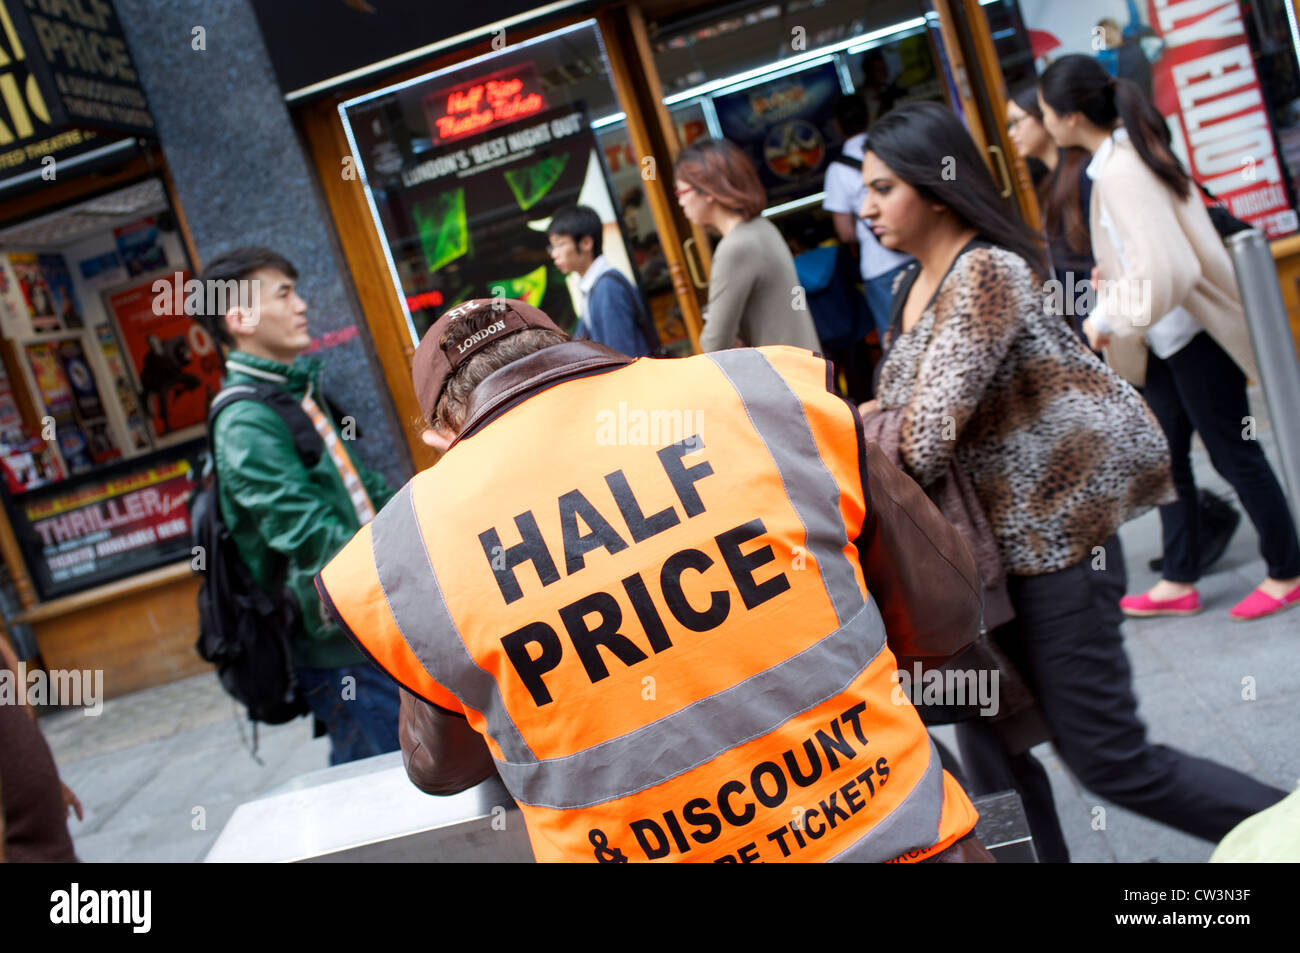 Man wearing a hi vis jacket with Half Price written on it, discounts, London - Stock Image